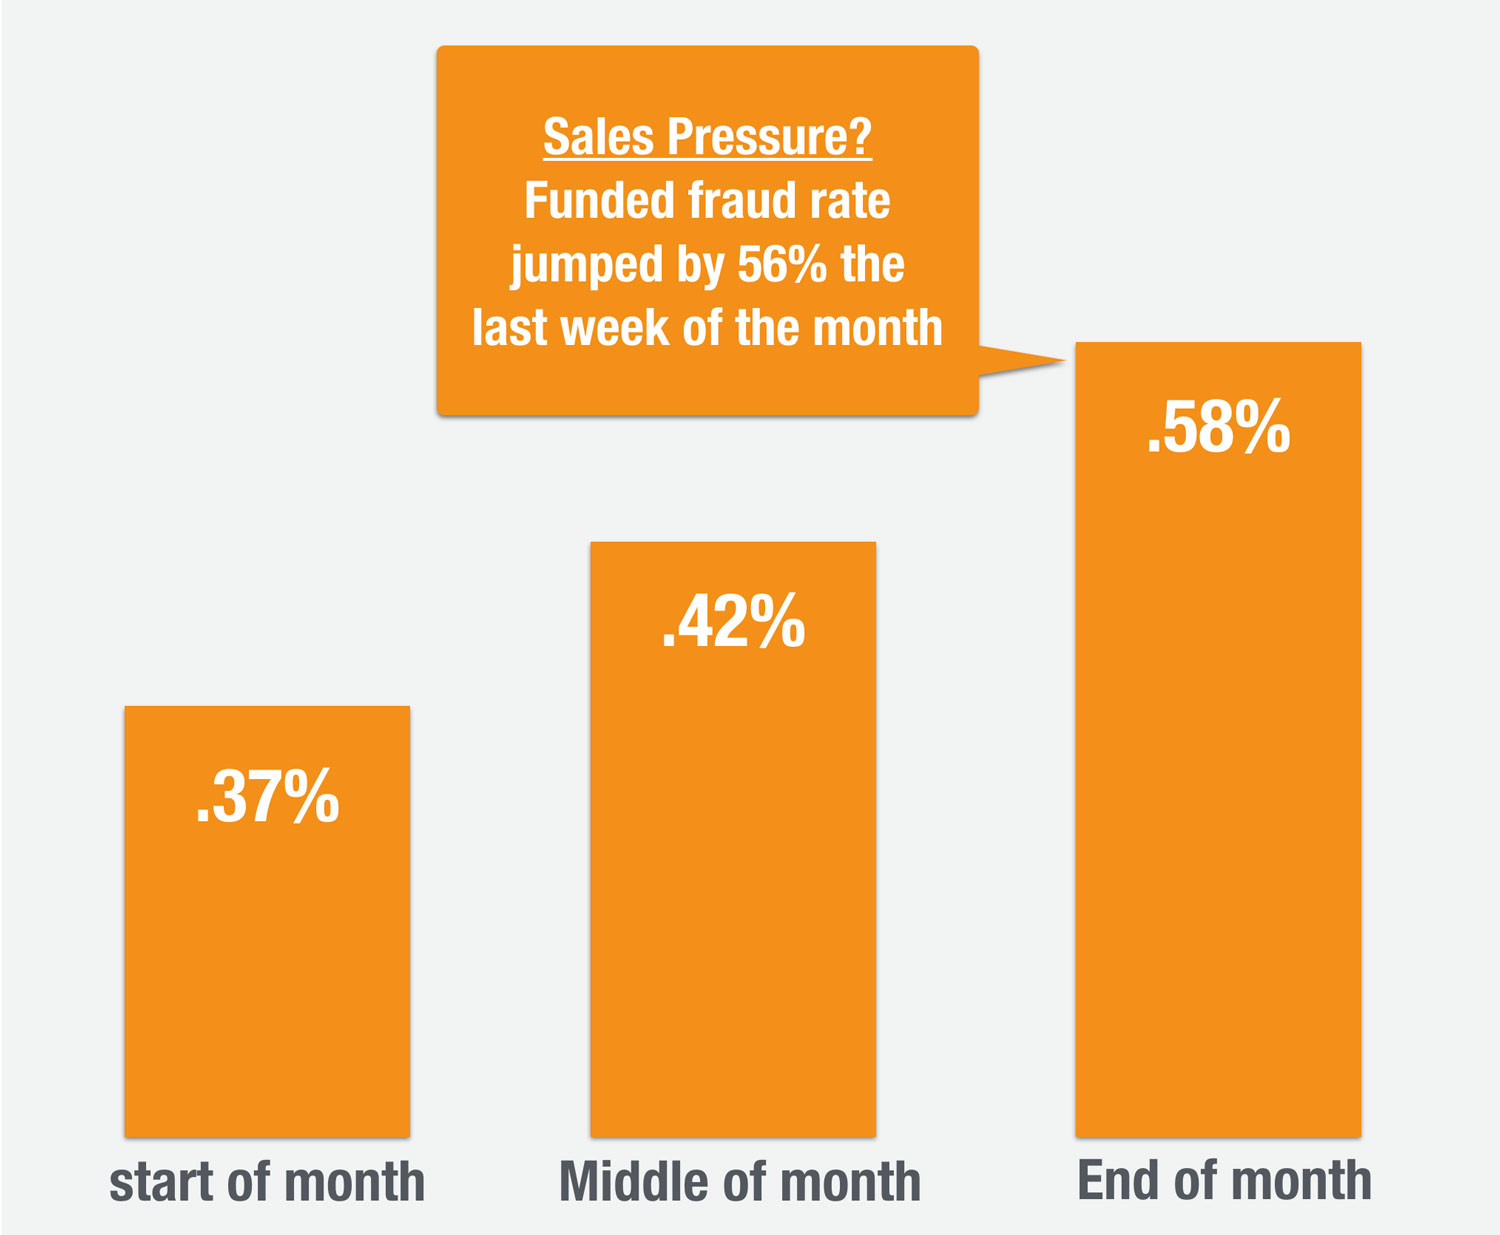 sales-pressure-and-fraud